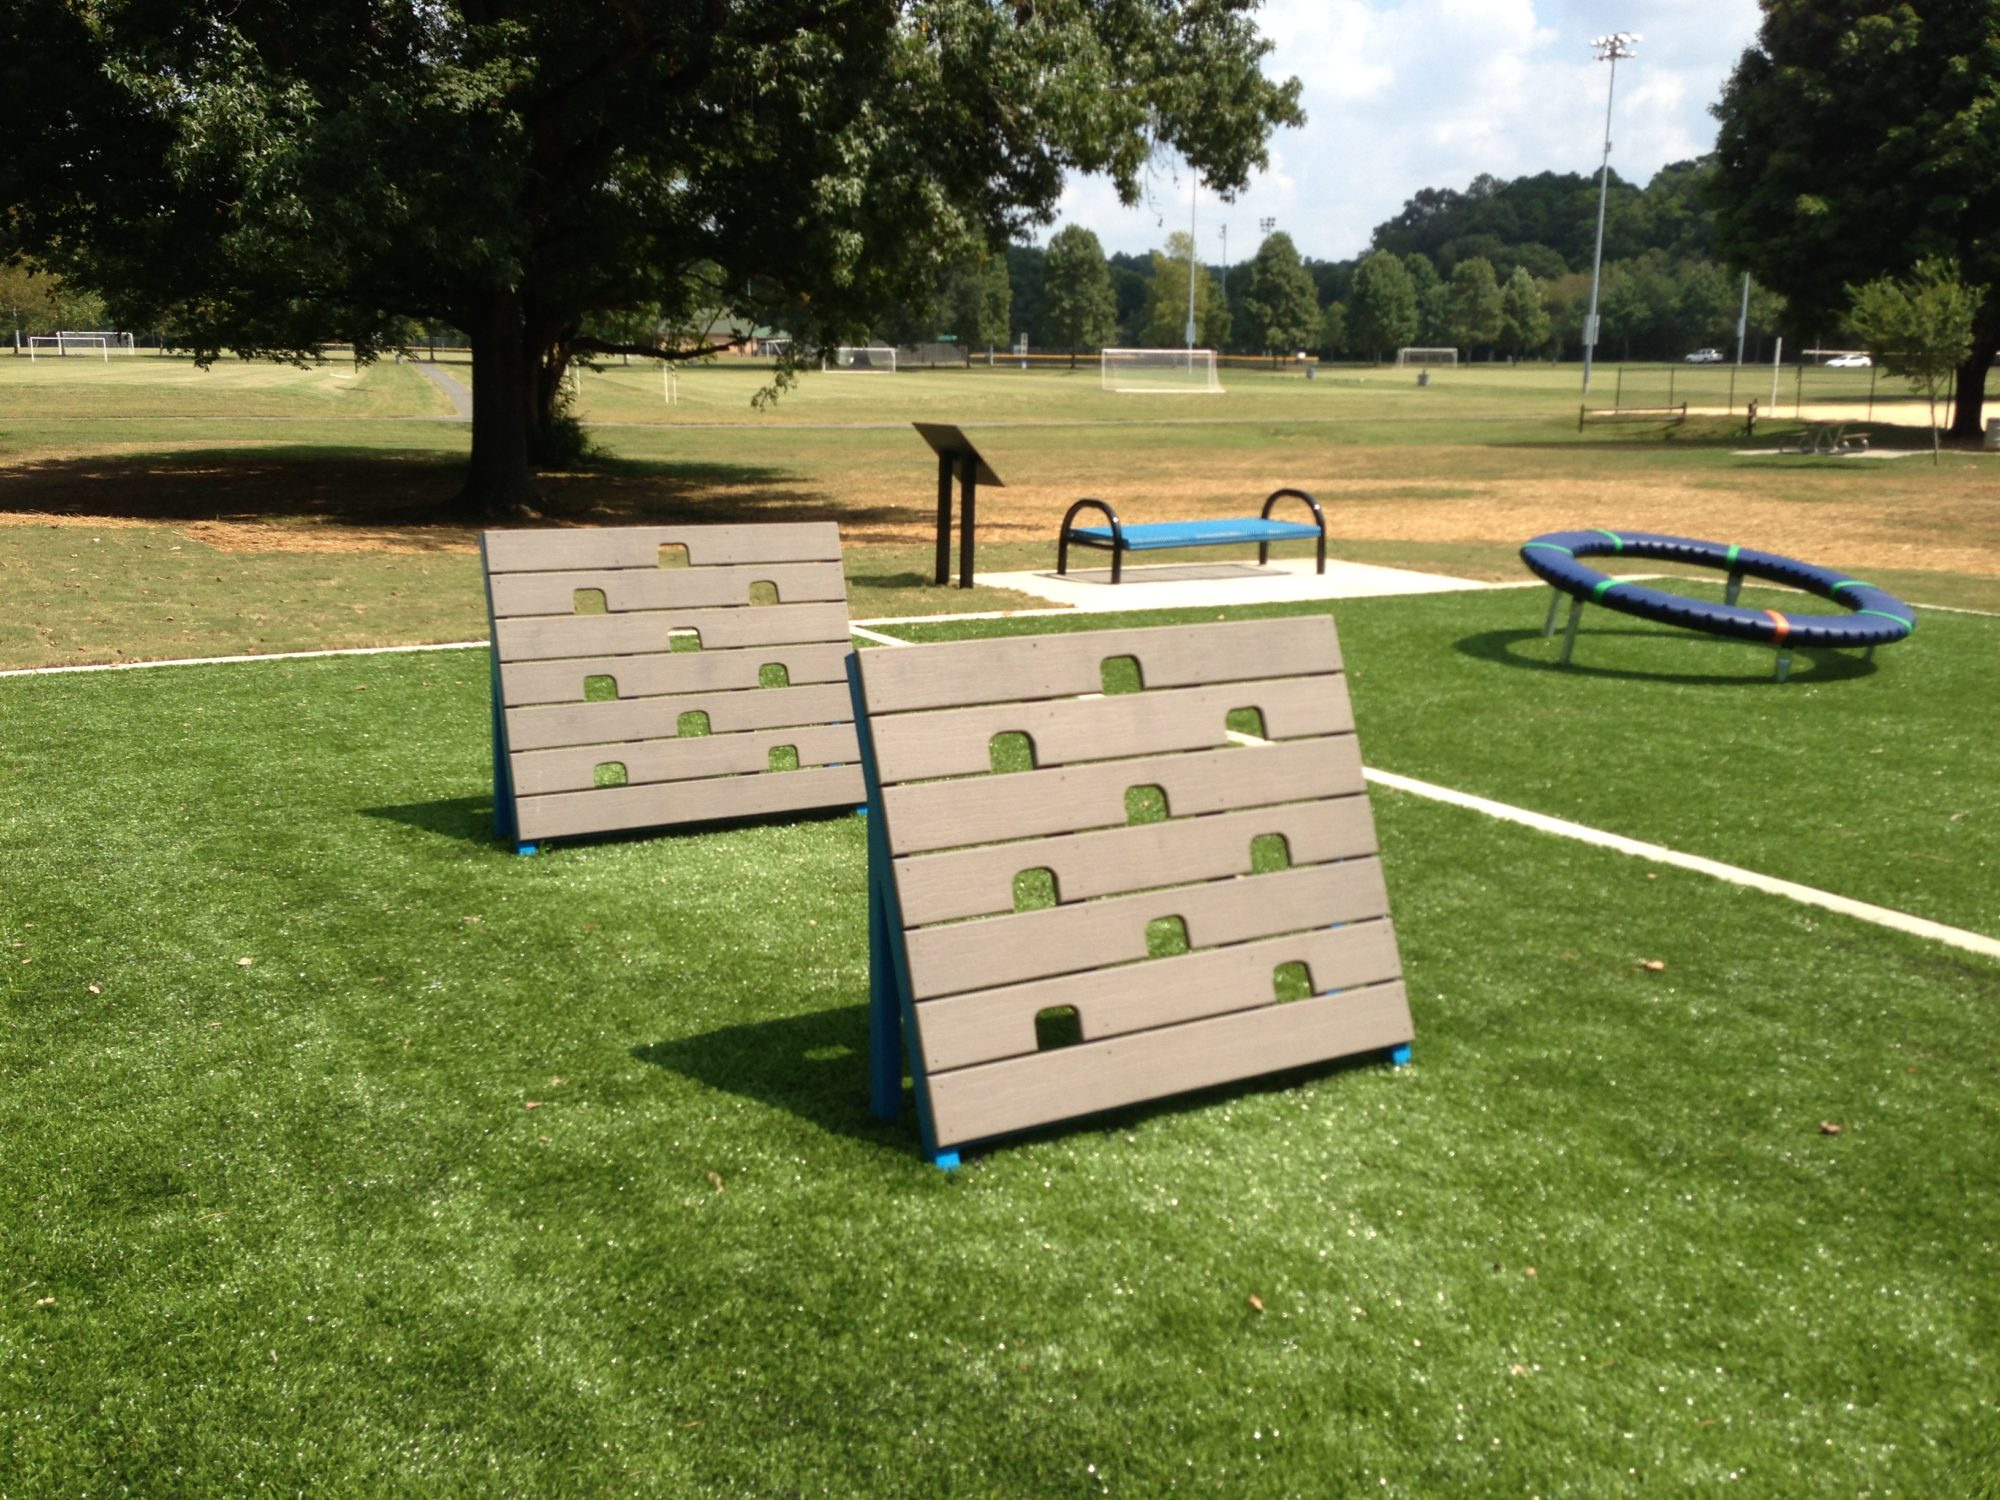 NFL themed playground